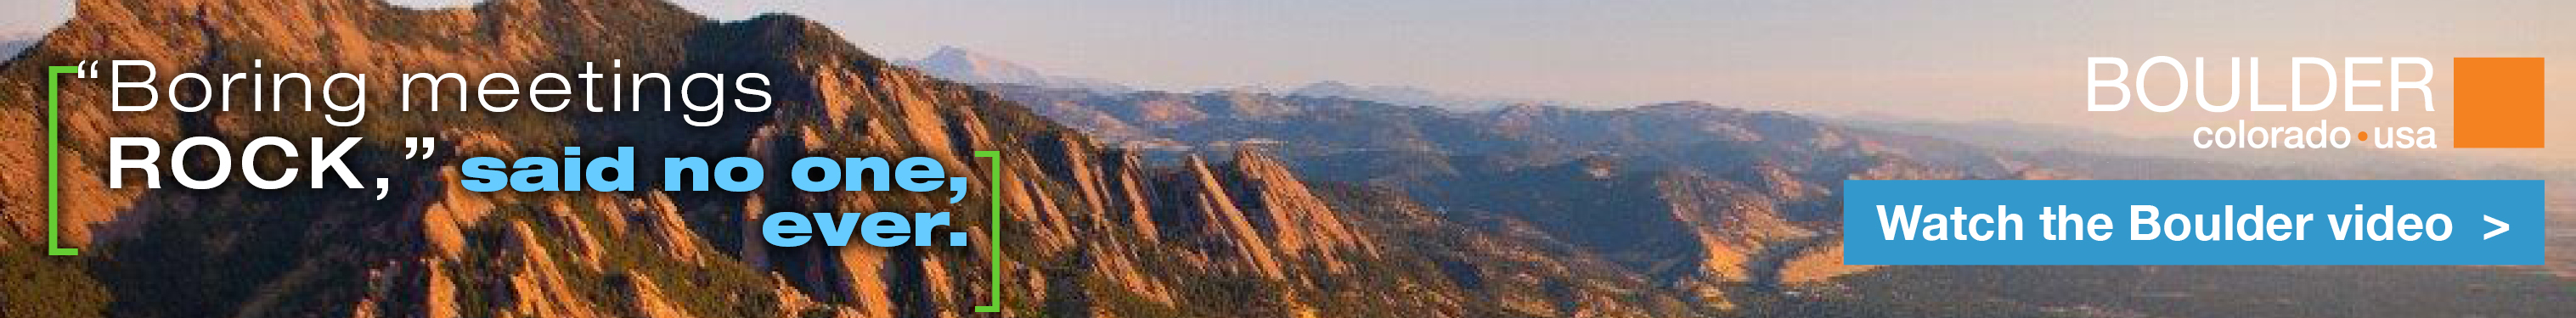 Boulder Convention & Visitors Bureau